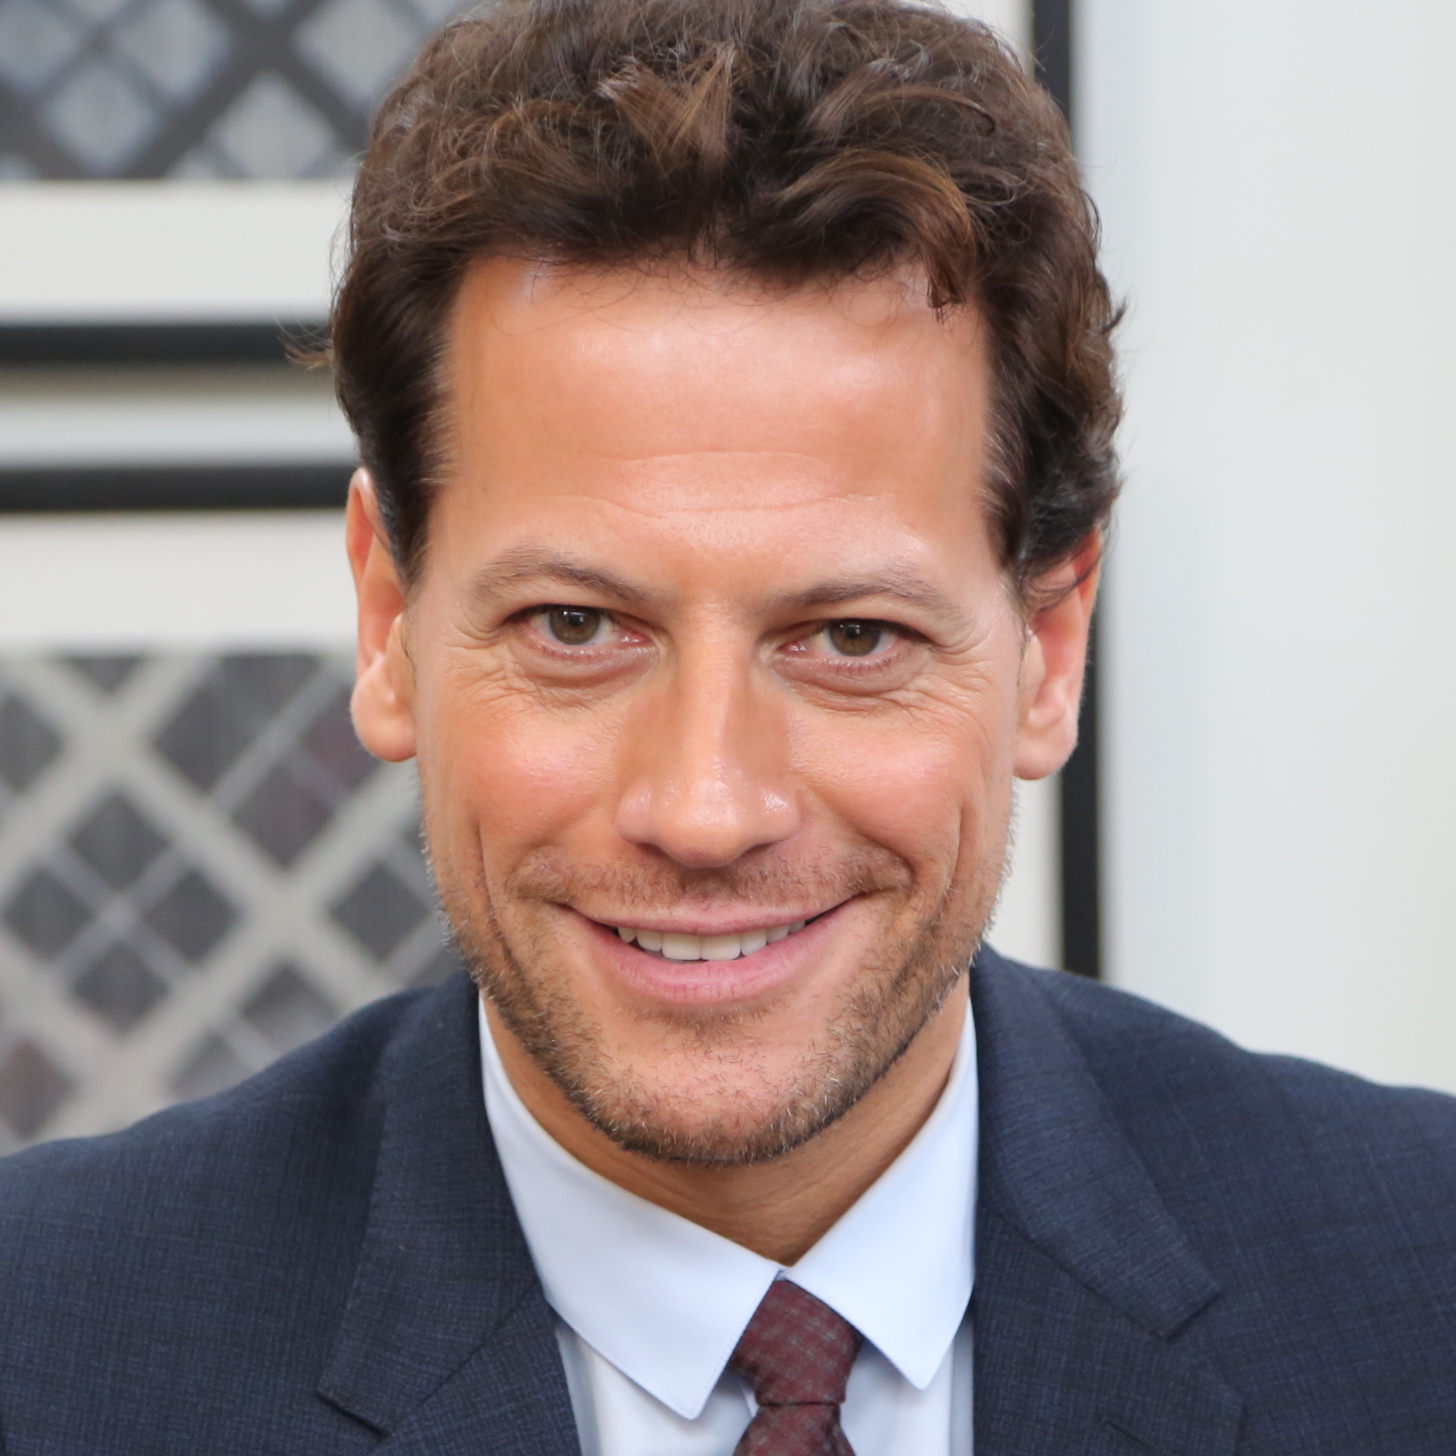 Ioan Gruffudd earned a  million dollar salary, leaving the net worth at 6 million in 2017